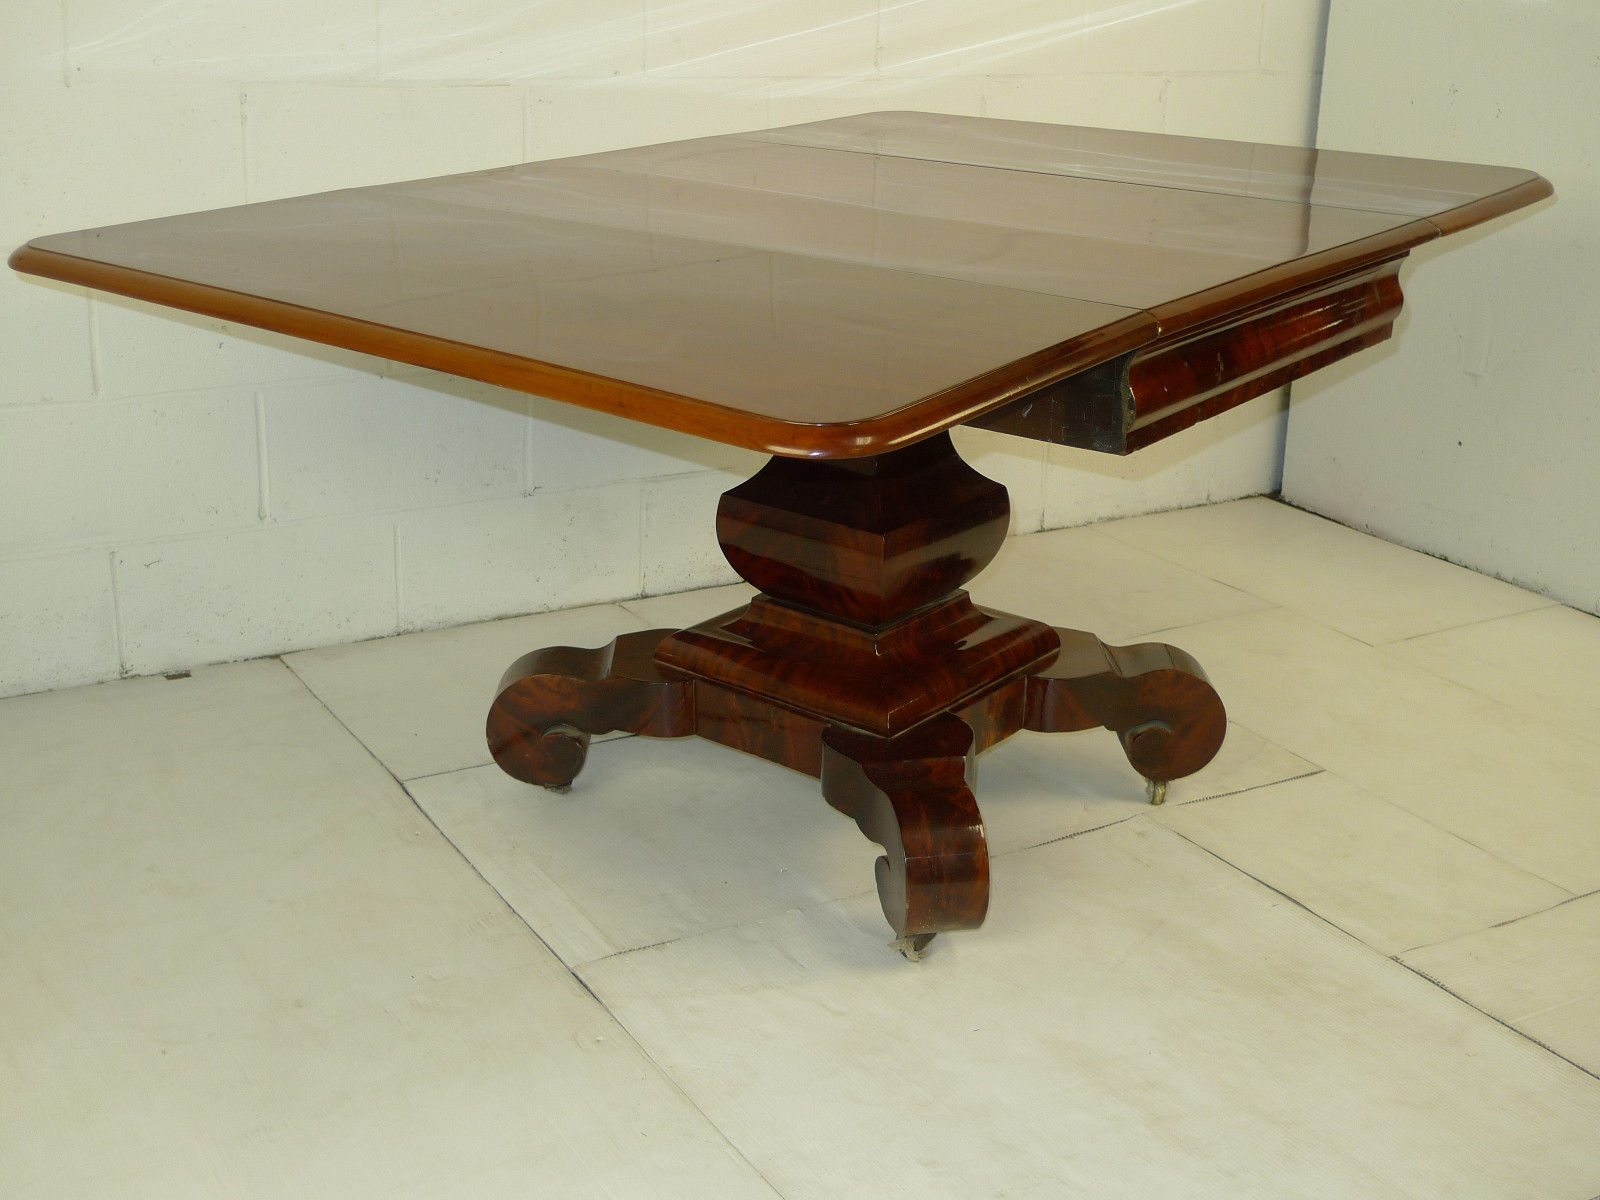 American Empire Figured Crotch Mahogany Drop Leaf Dining Table